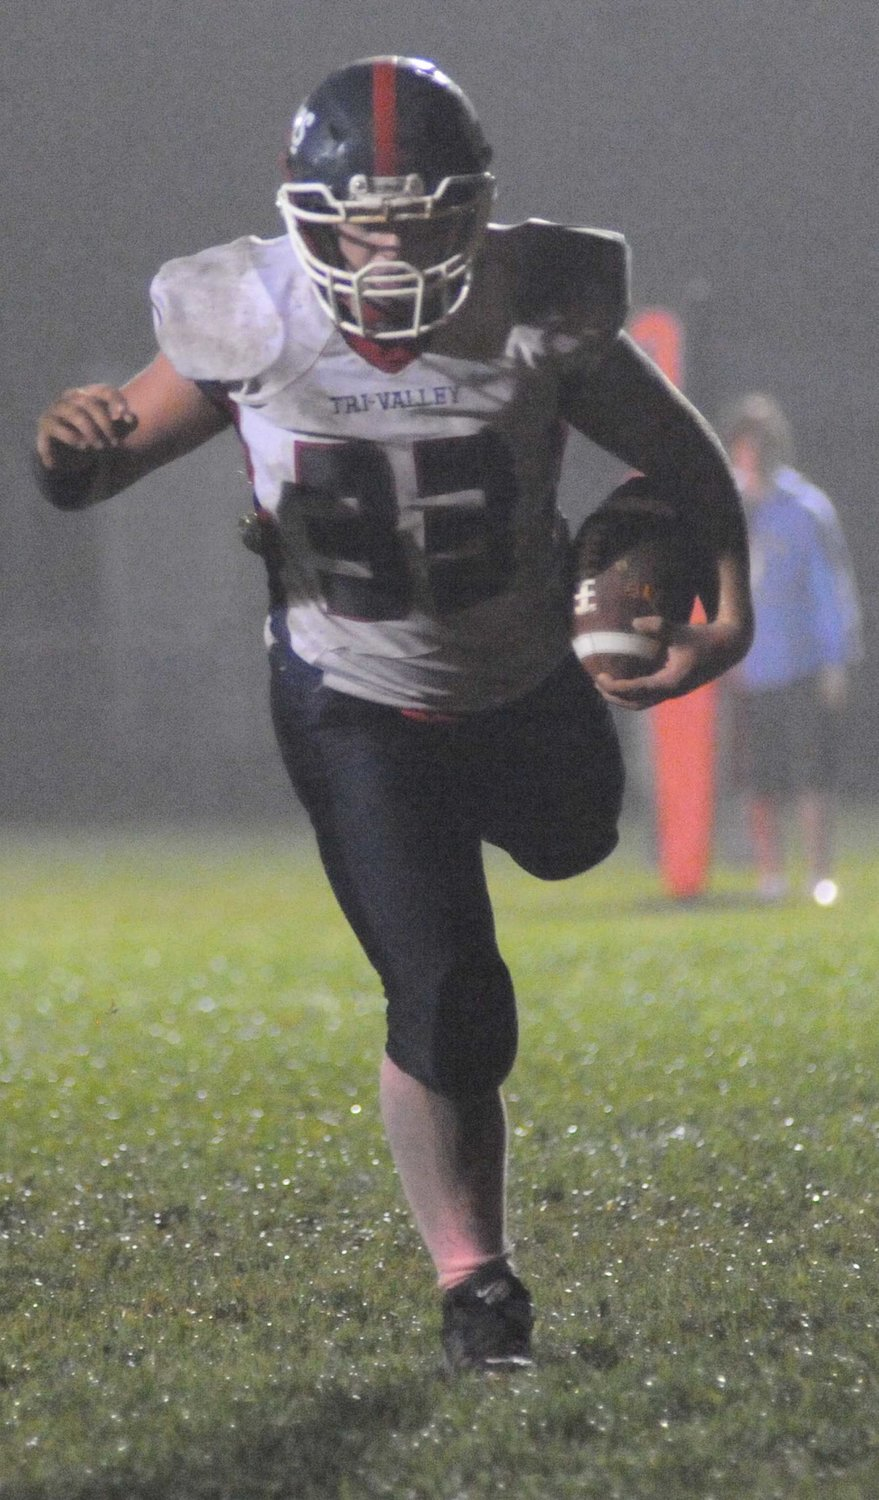 End zone dance: Tri-Valley's Alex Schulte scored two TDs for the Bears.